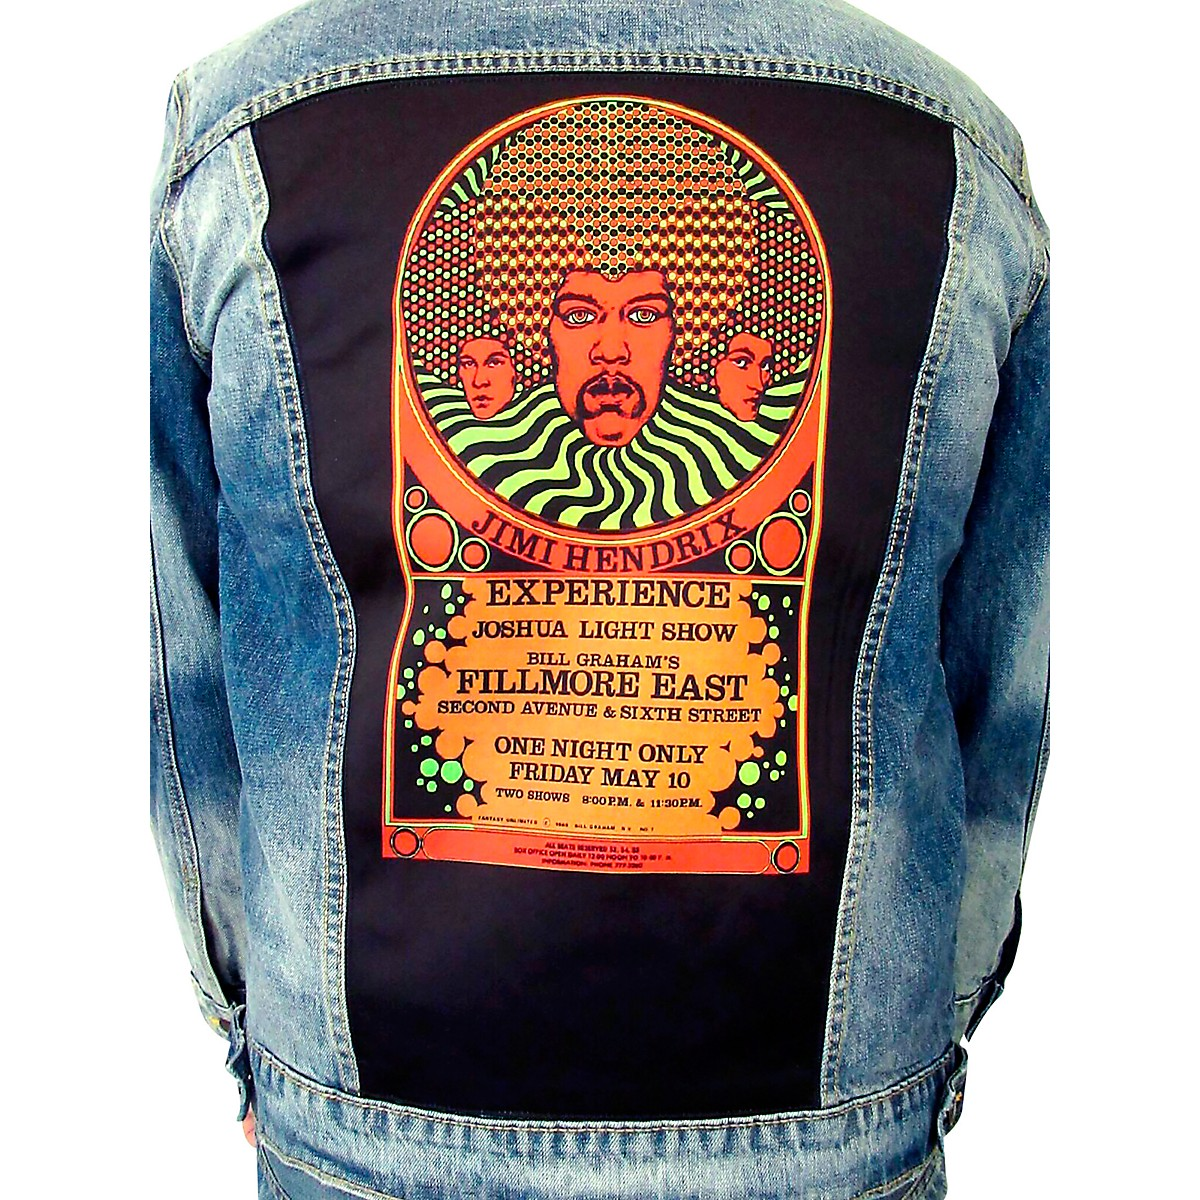 Dragonfly Clothing Jimi Hendrix Experience 3 Faces - Psychedelic Denim Jacket